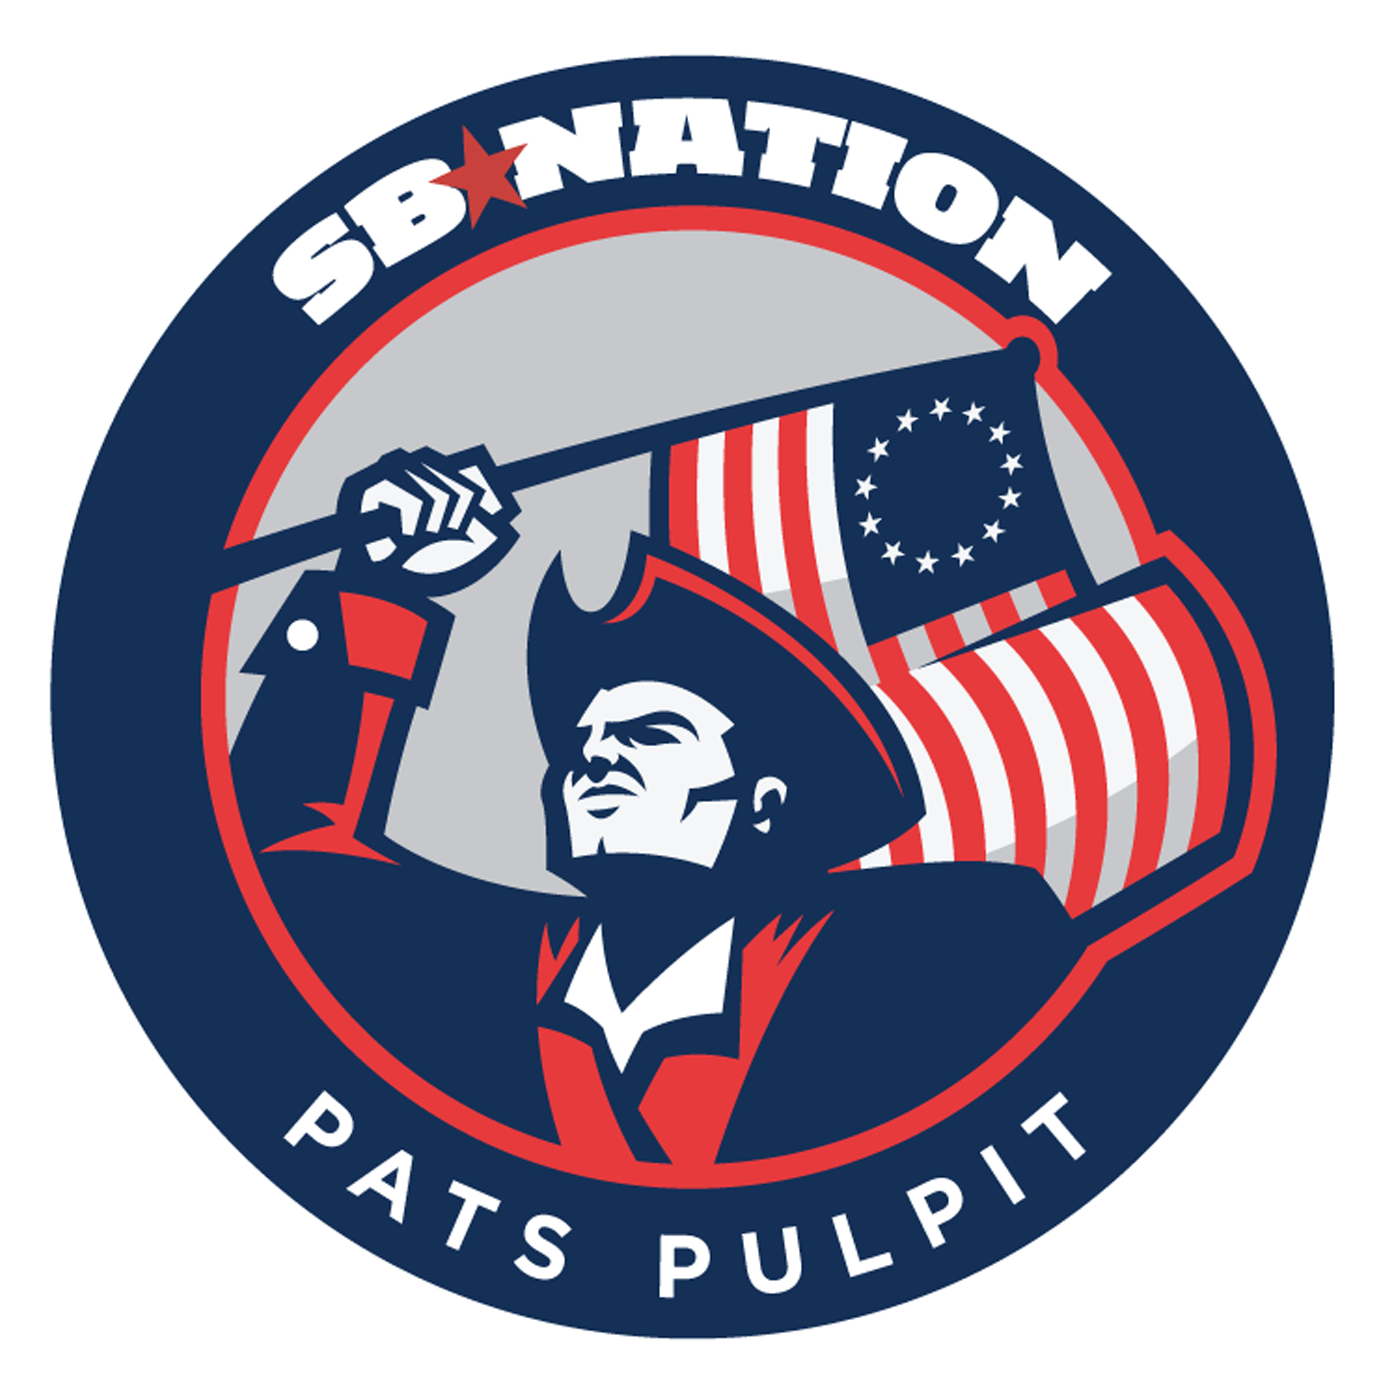 Pats Pulpit Podcast: For New England Patriots Fans